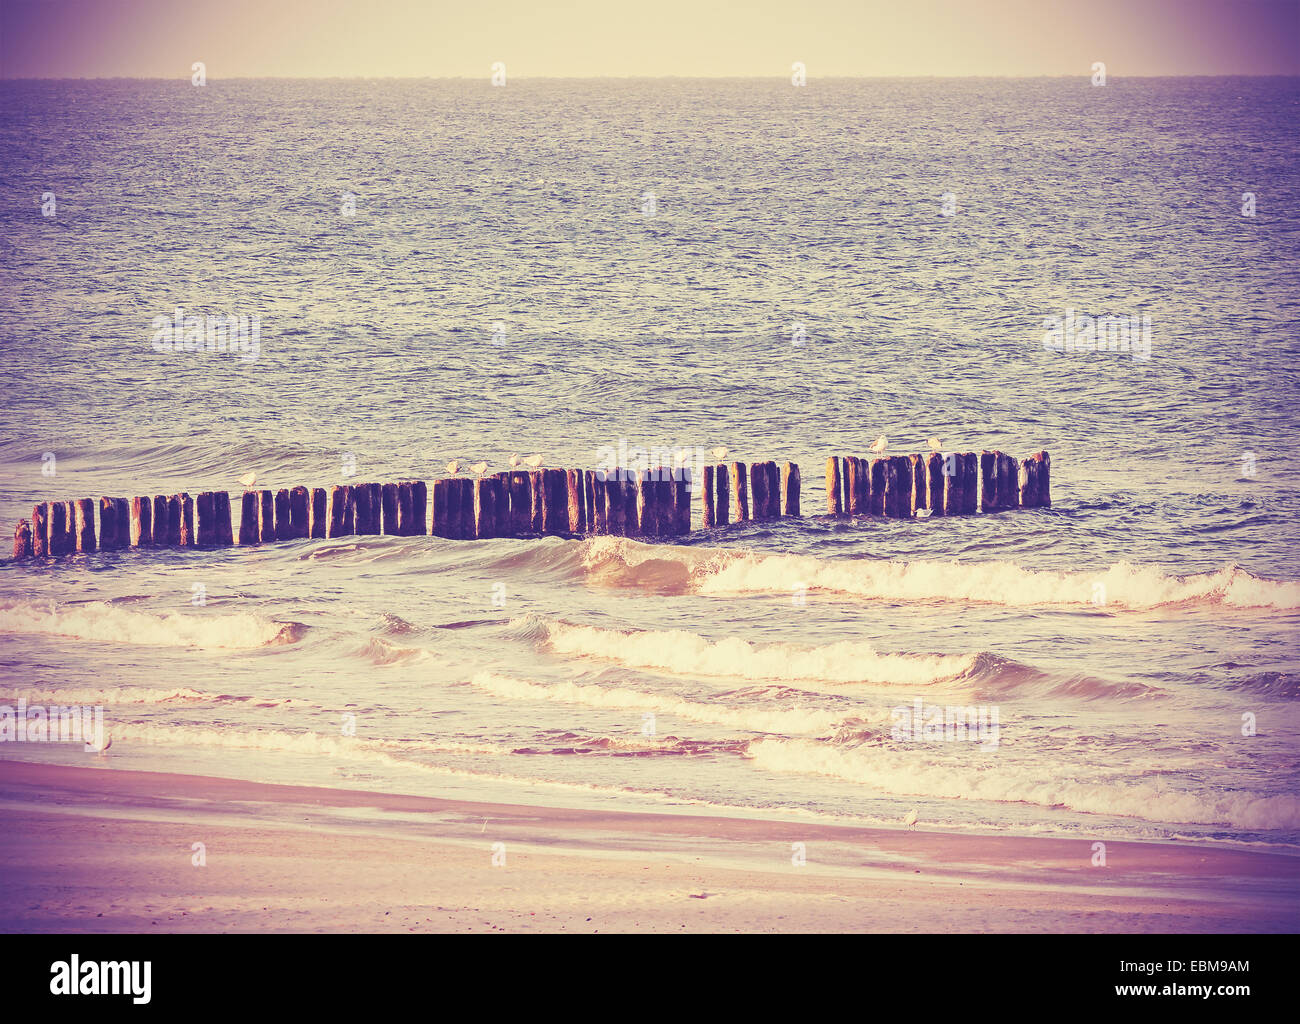 Vintage retro filtered picture of a beach, peaceful background. - Stock Image